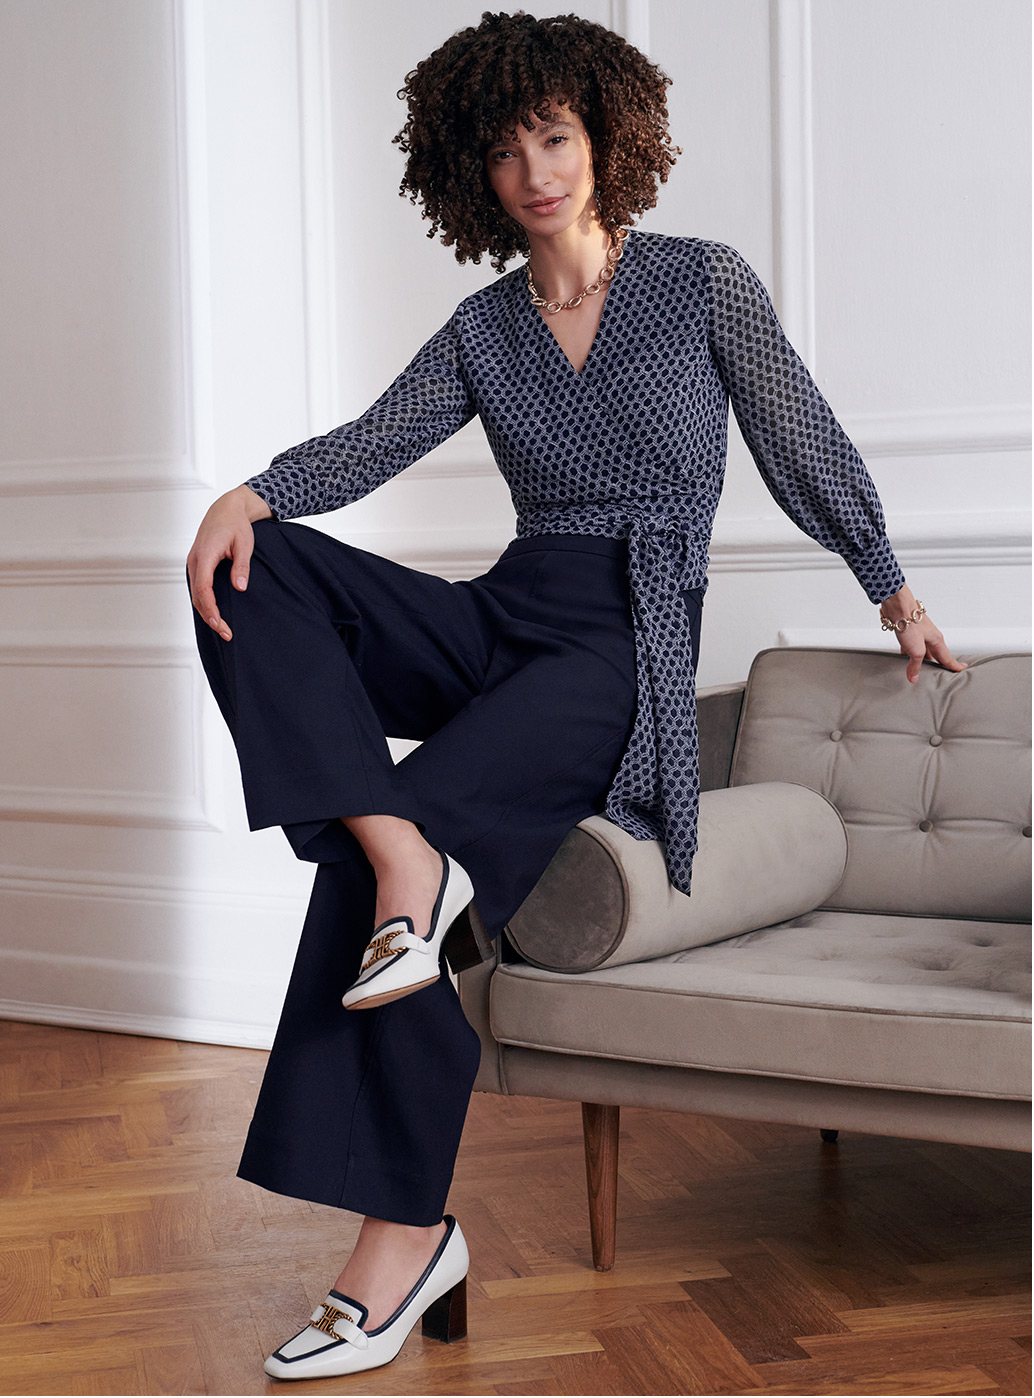 Model wears Hobbs white and navy court shoes.